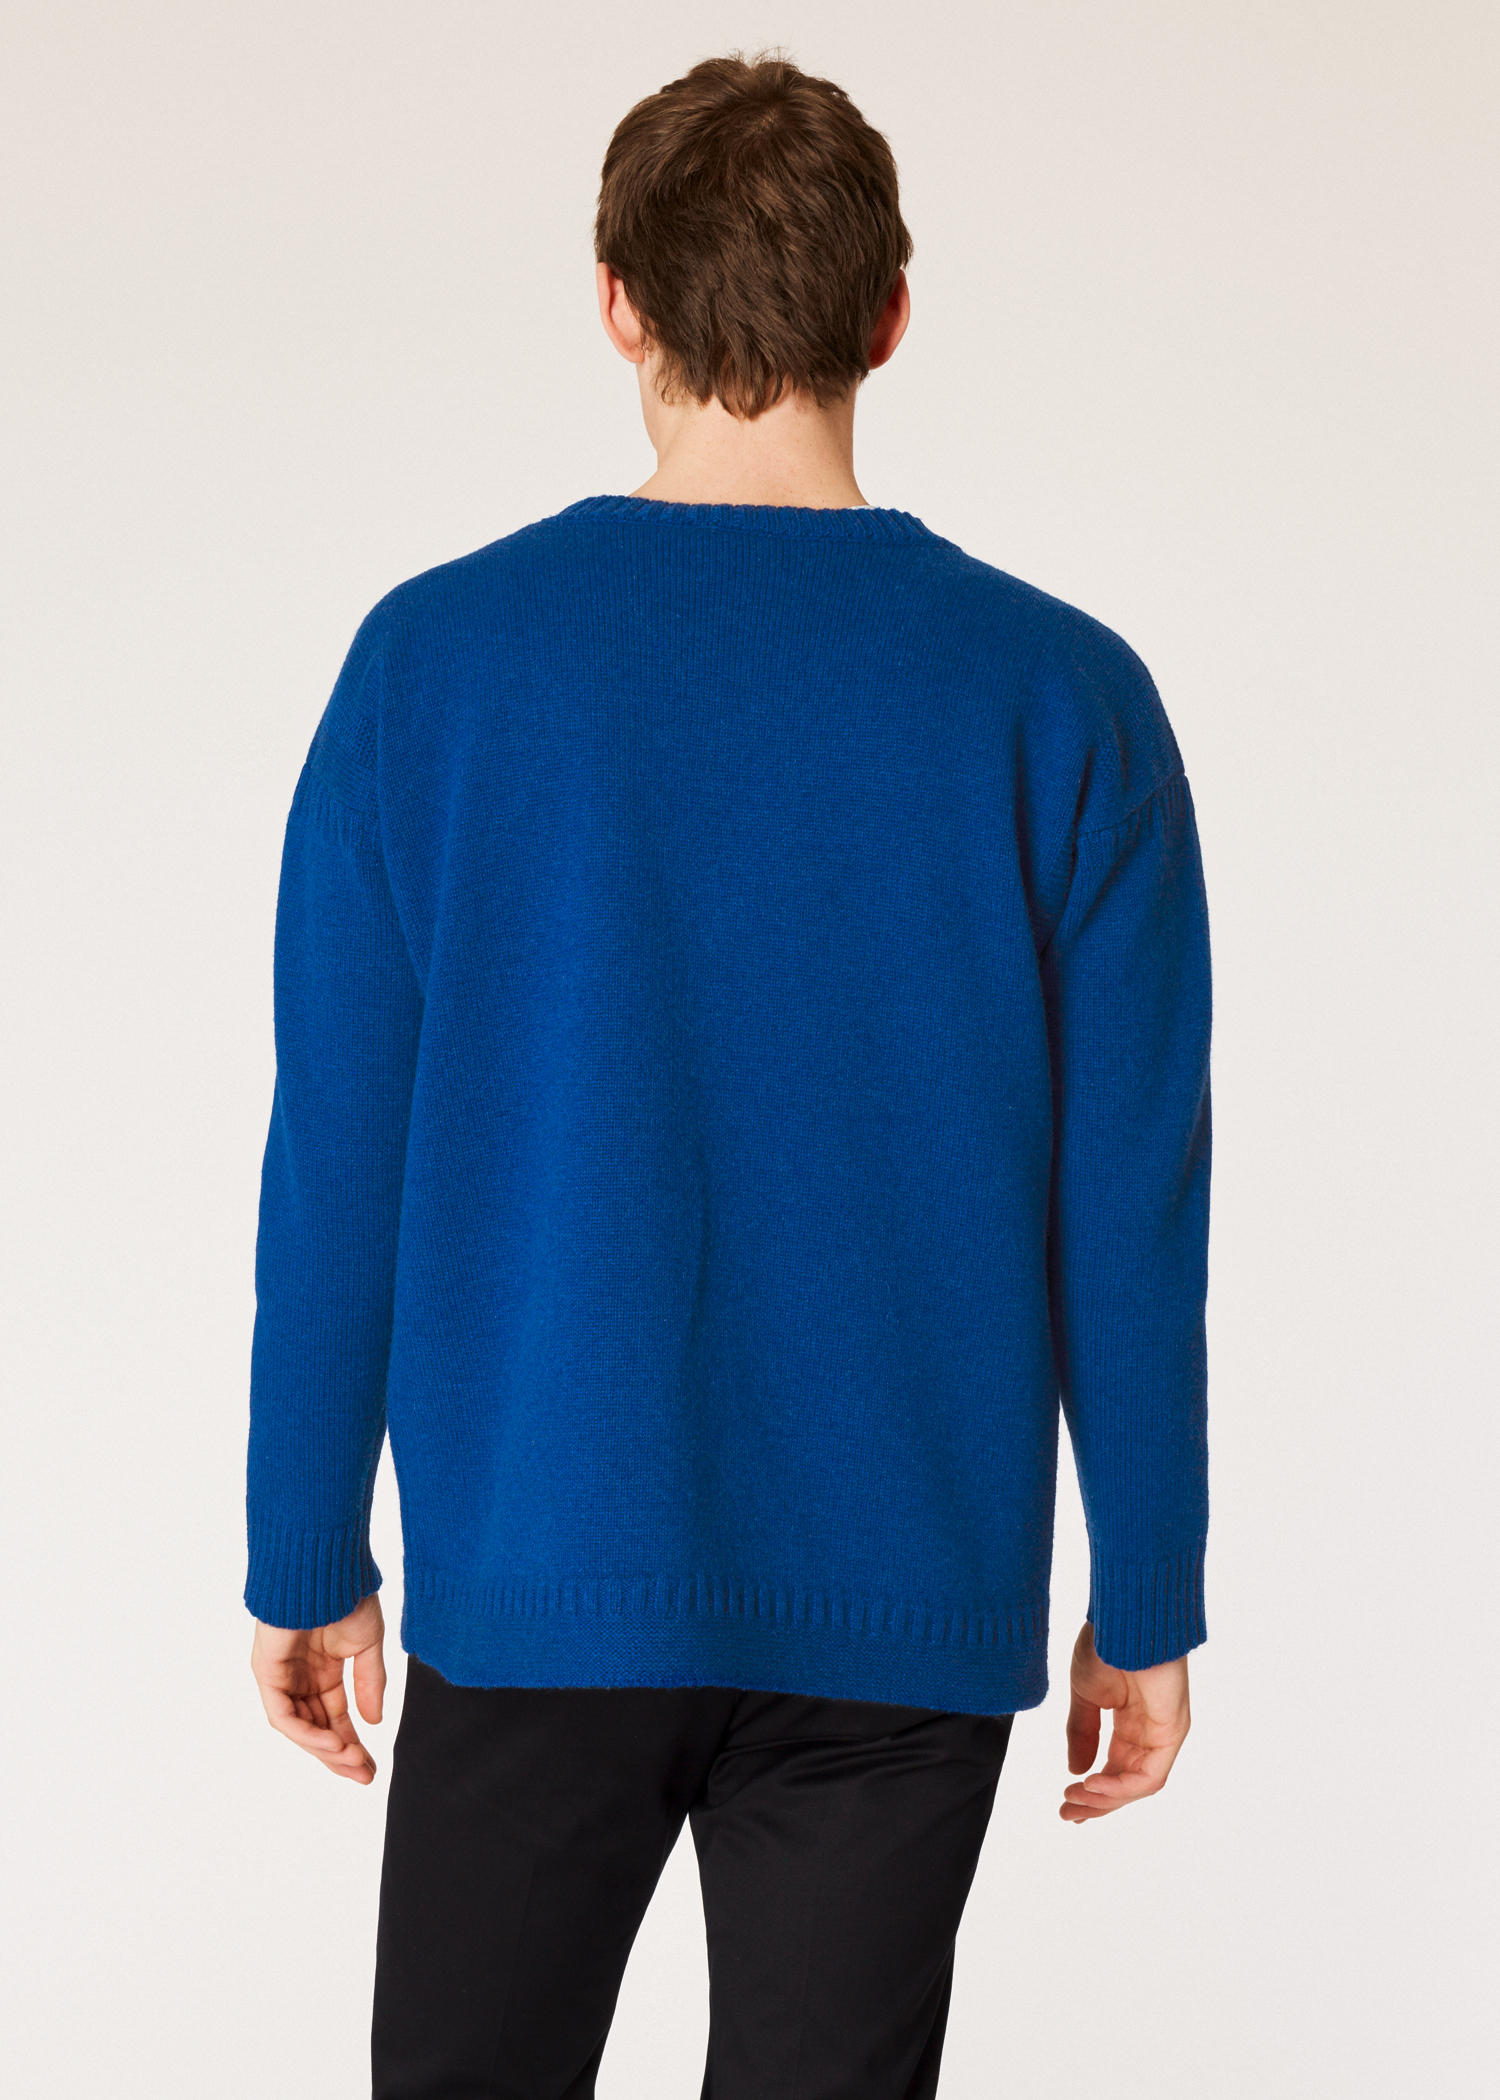 Model back close up - Men s Blue Lambswool Moss-Stitch Crew Neck Sweater  Paul Smith d54d30e9f